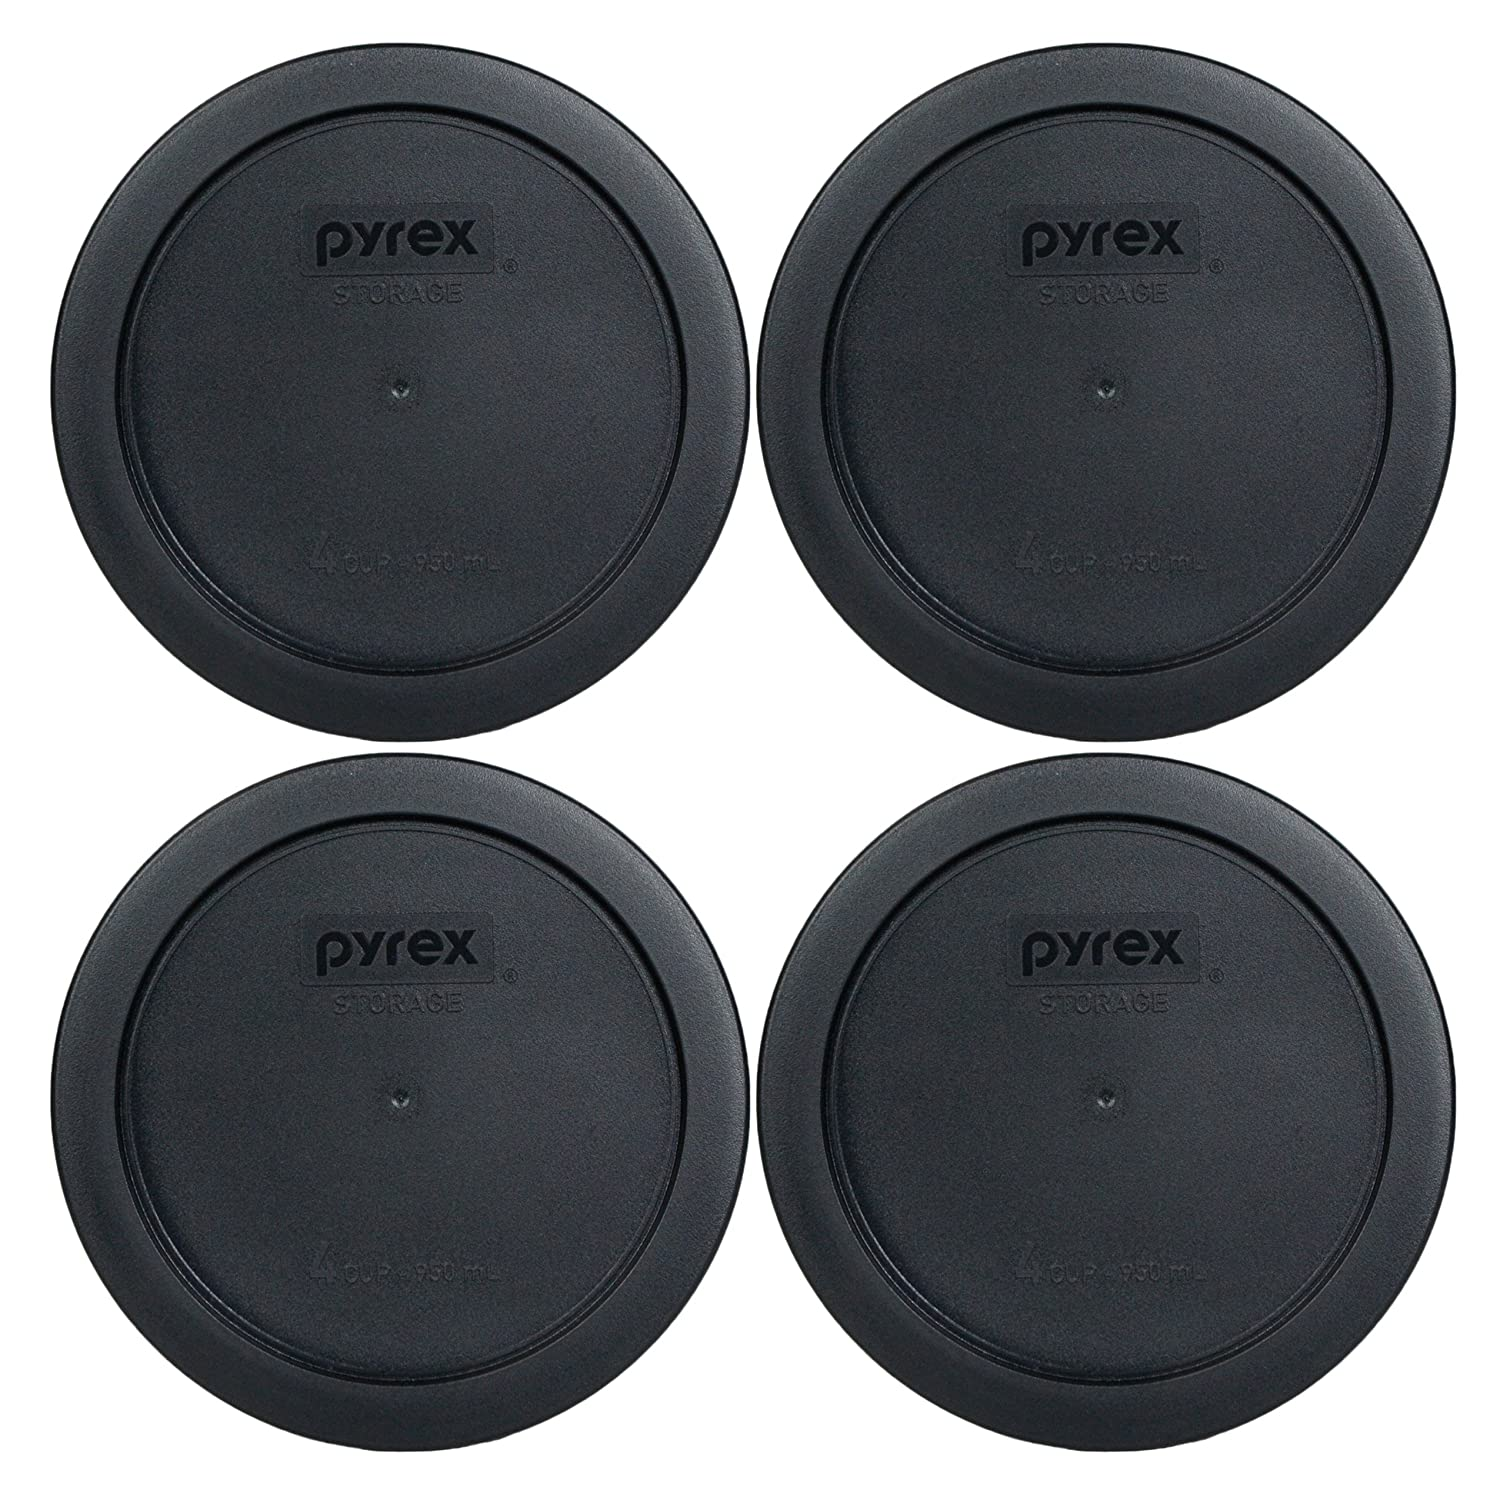 Pyrex 7201-PC 4 Cup Round Storage Cover for Glass Bowls (4, Black)